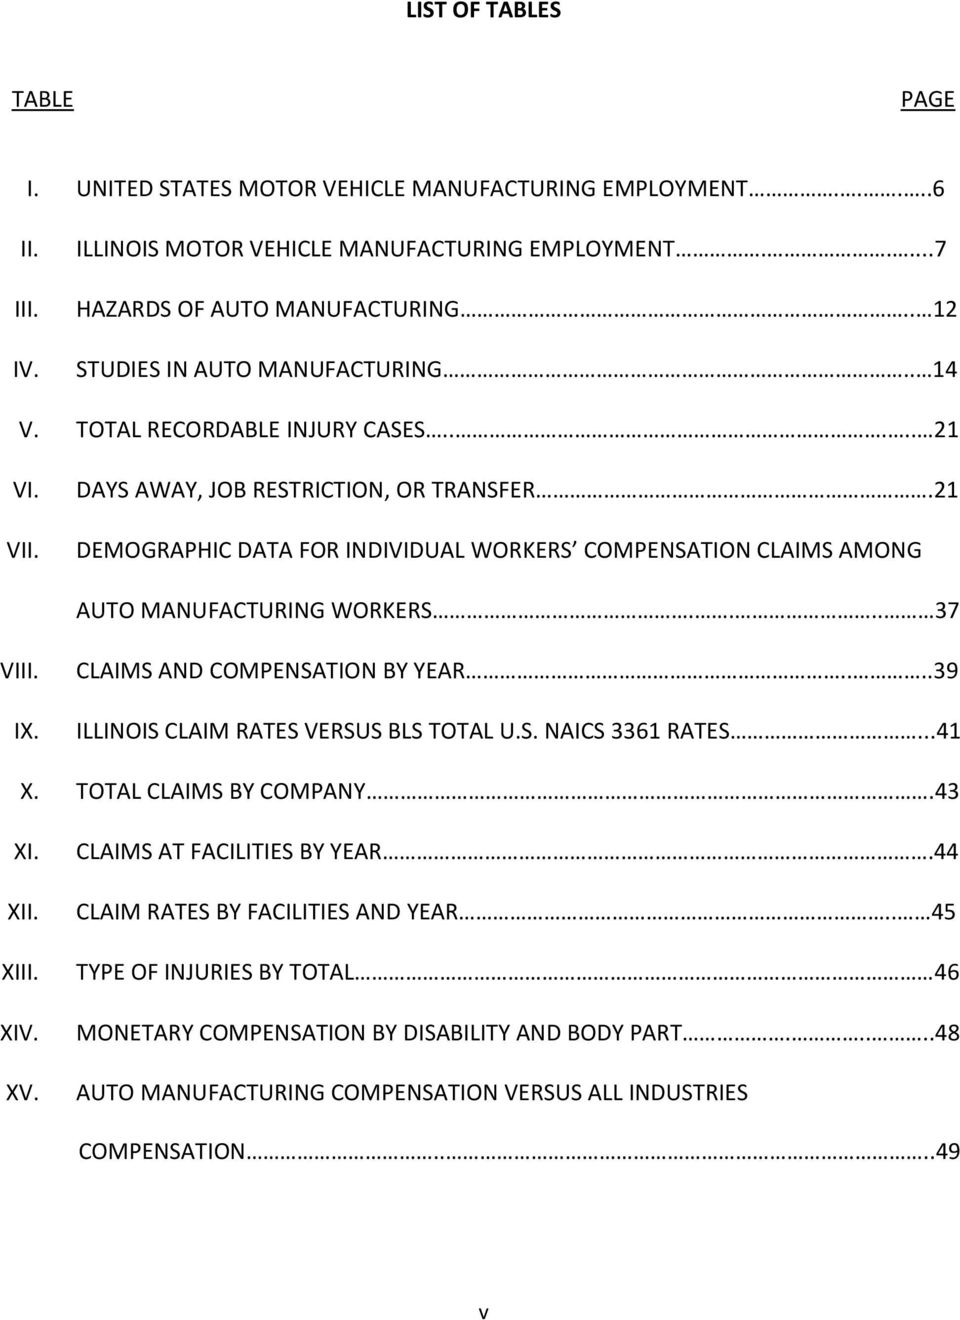 21 DEMOGRAPHIC DATA FOR INDIVIDUAL WORKERS COMPENSATION CLAIMS AMONG AUTO MANUFACTURING WORKERS.... 37 VIII. IX. CLAIMS AND COMPENSATION BY YEAR....39 ILLINOIS CLAIM RATES VERSUS BLS TOTAL U.S. NAICS 3361 RATES.